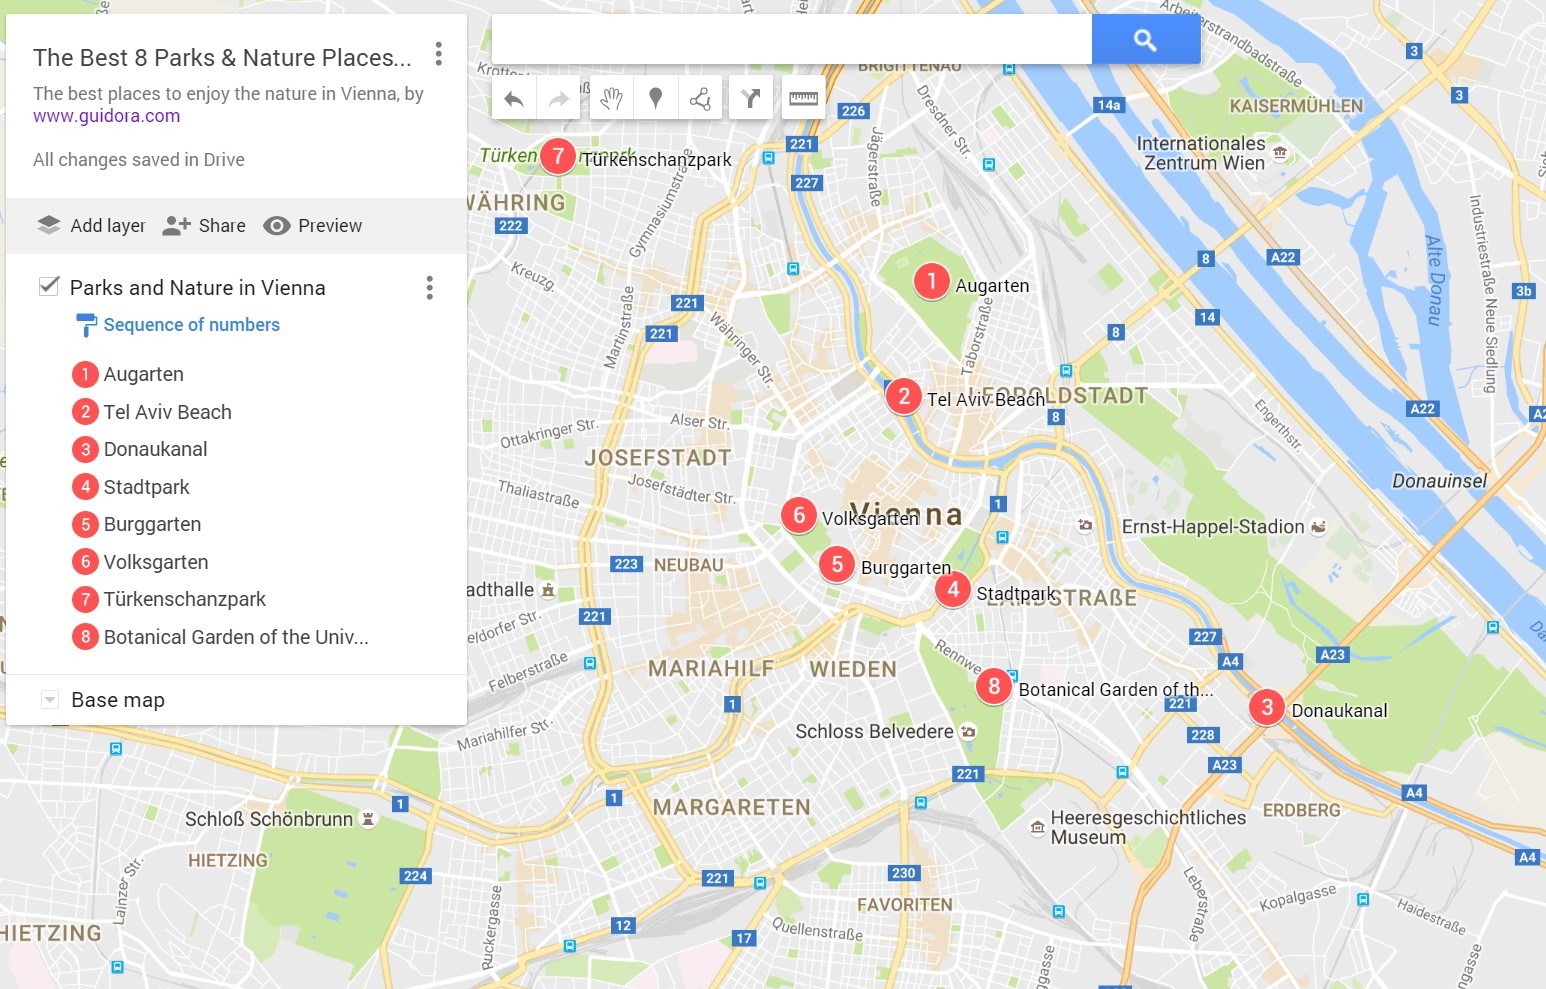 A Map with the Best Parks in Vienna